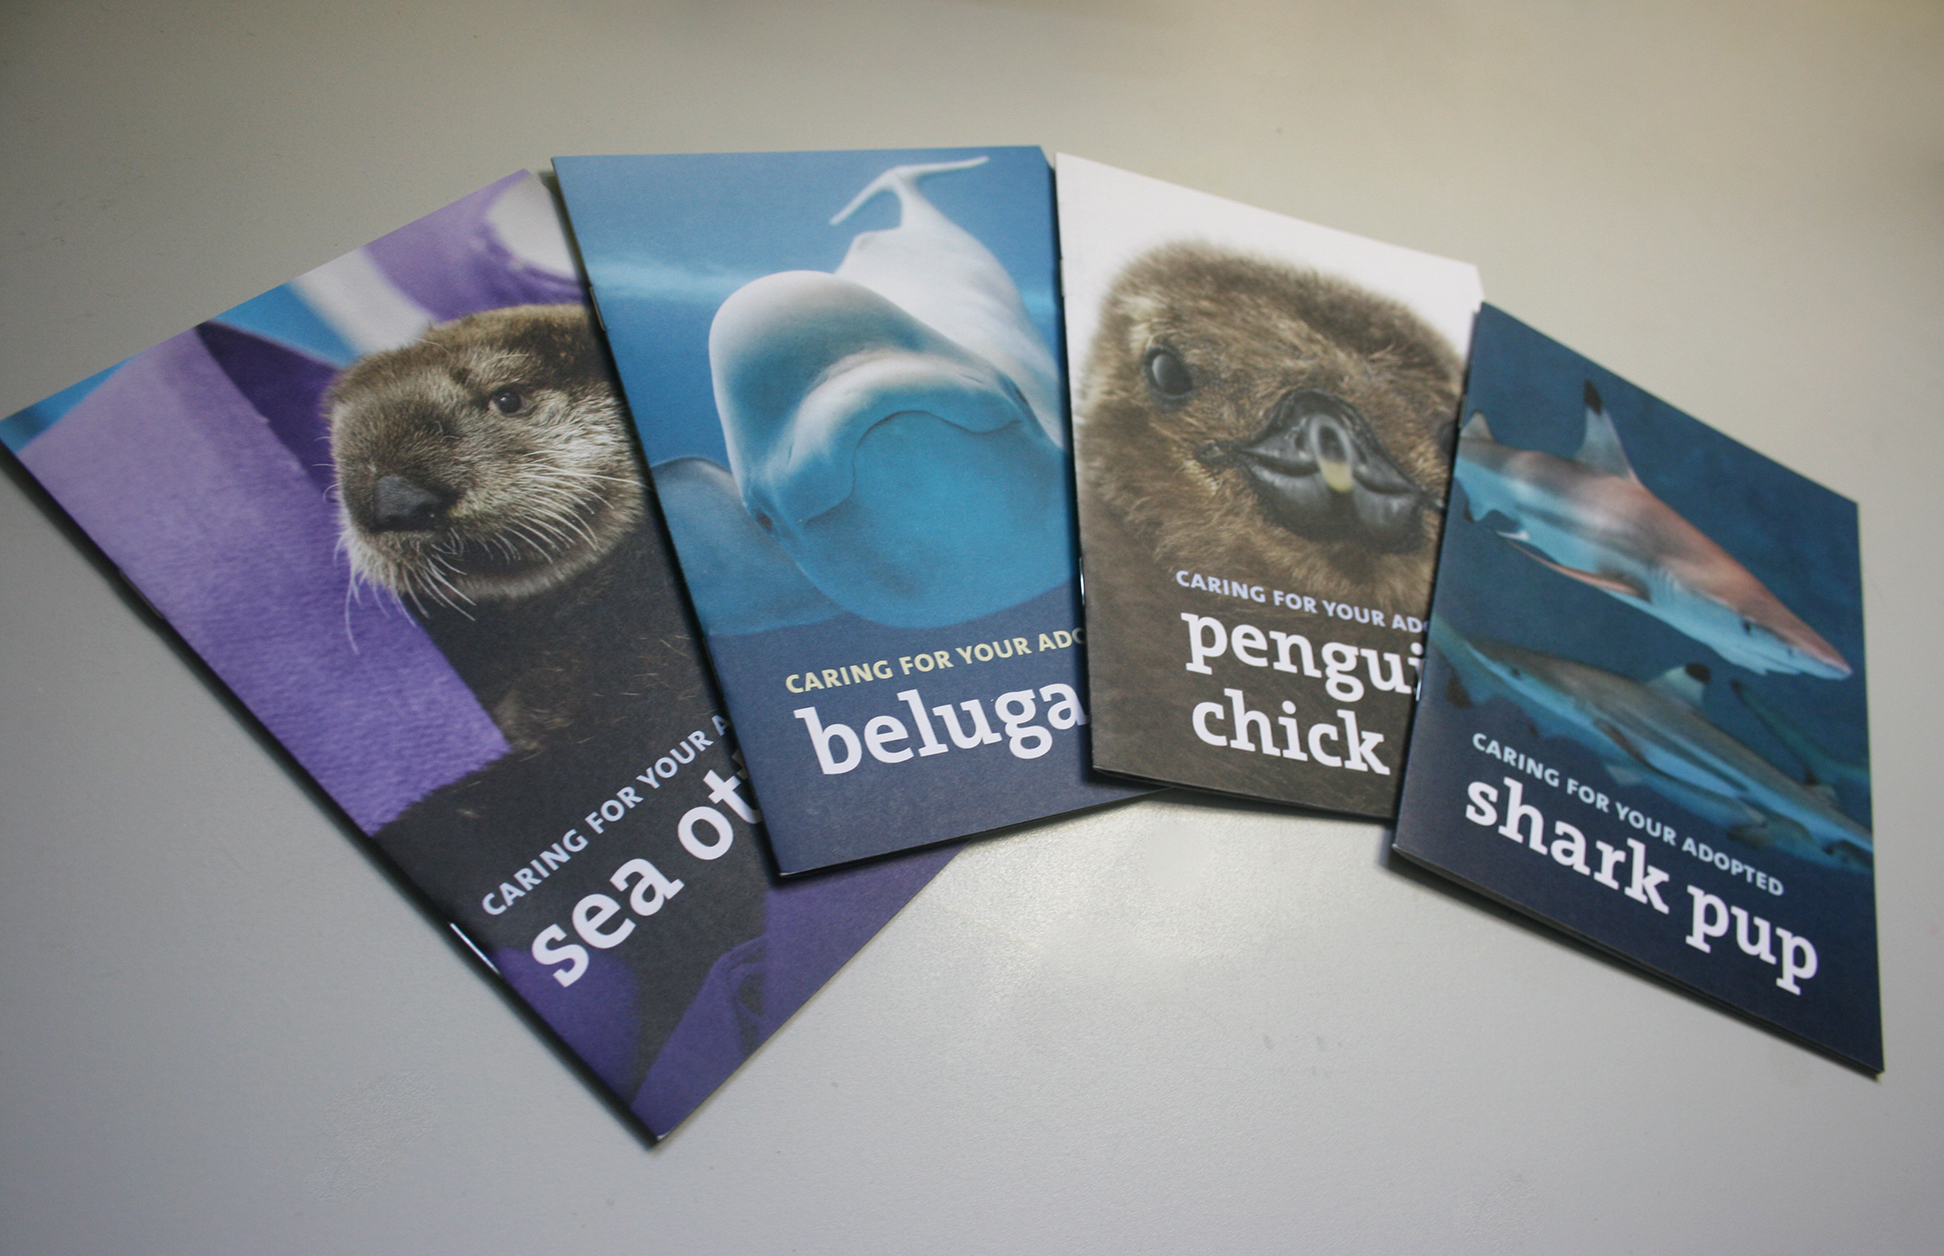 A set of four booklets are shown, each featuring a large photo of an animal with the title, 'Caring for your adopted...' and the name of the animal. The animals shown are a sea otter, a beluga whale, a penguin chick, and a shark pup.